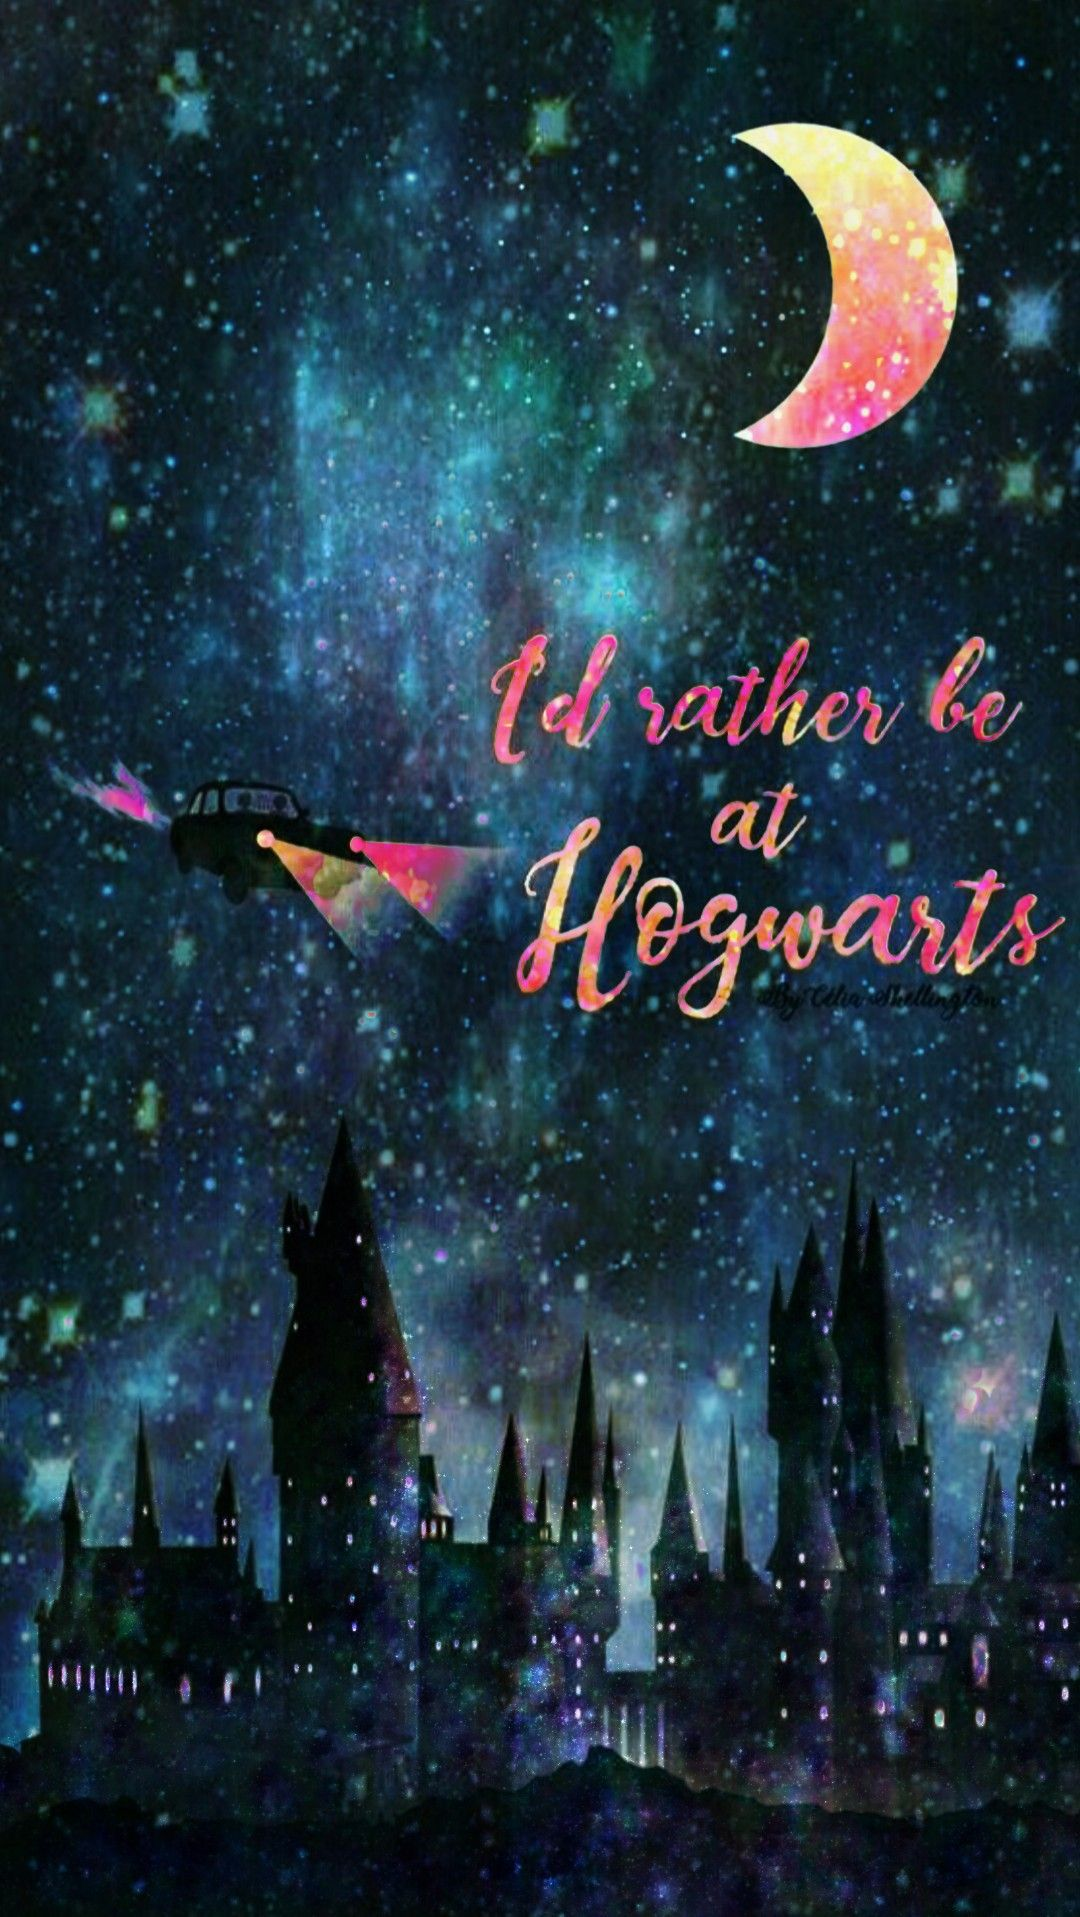 Hogwarts Night Made By Me Galaxy Glitter Sparkles Wallpapers